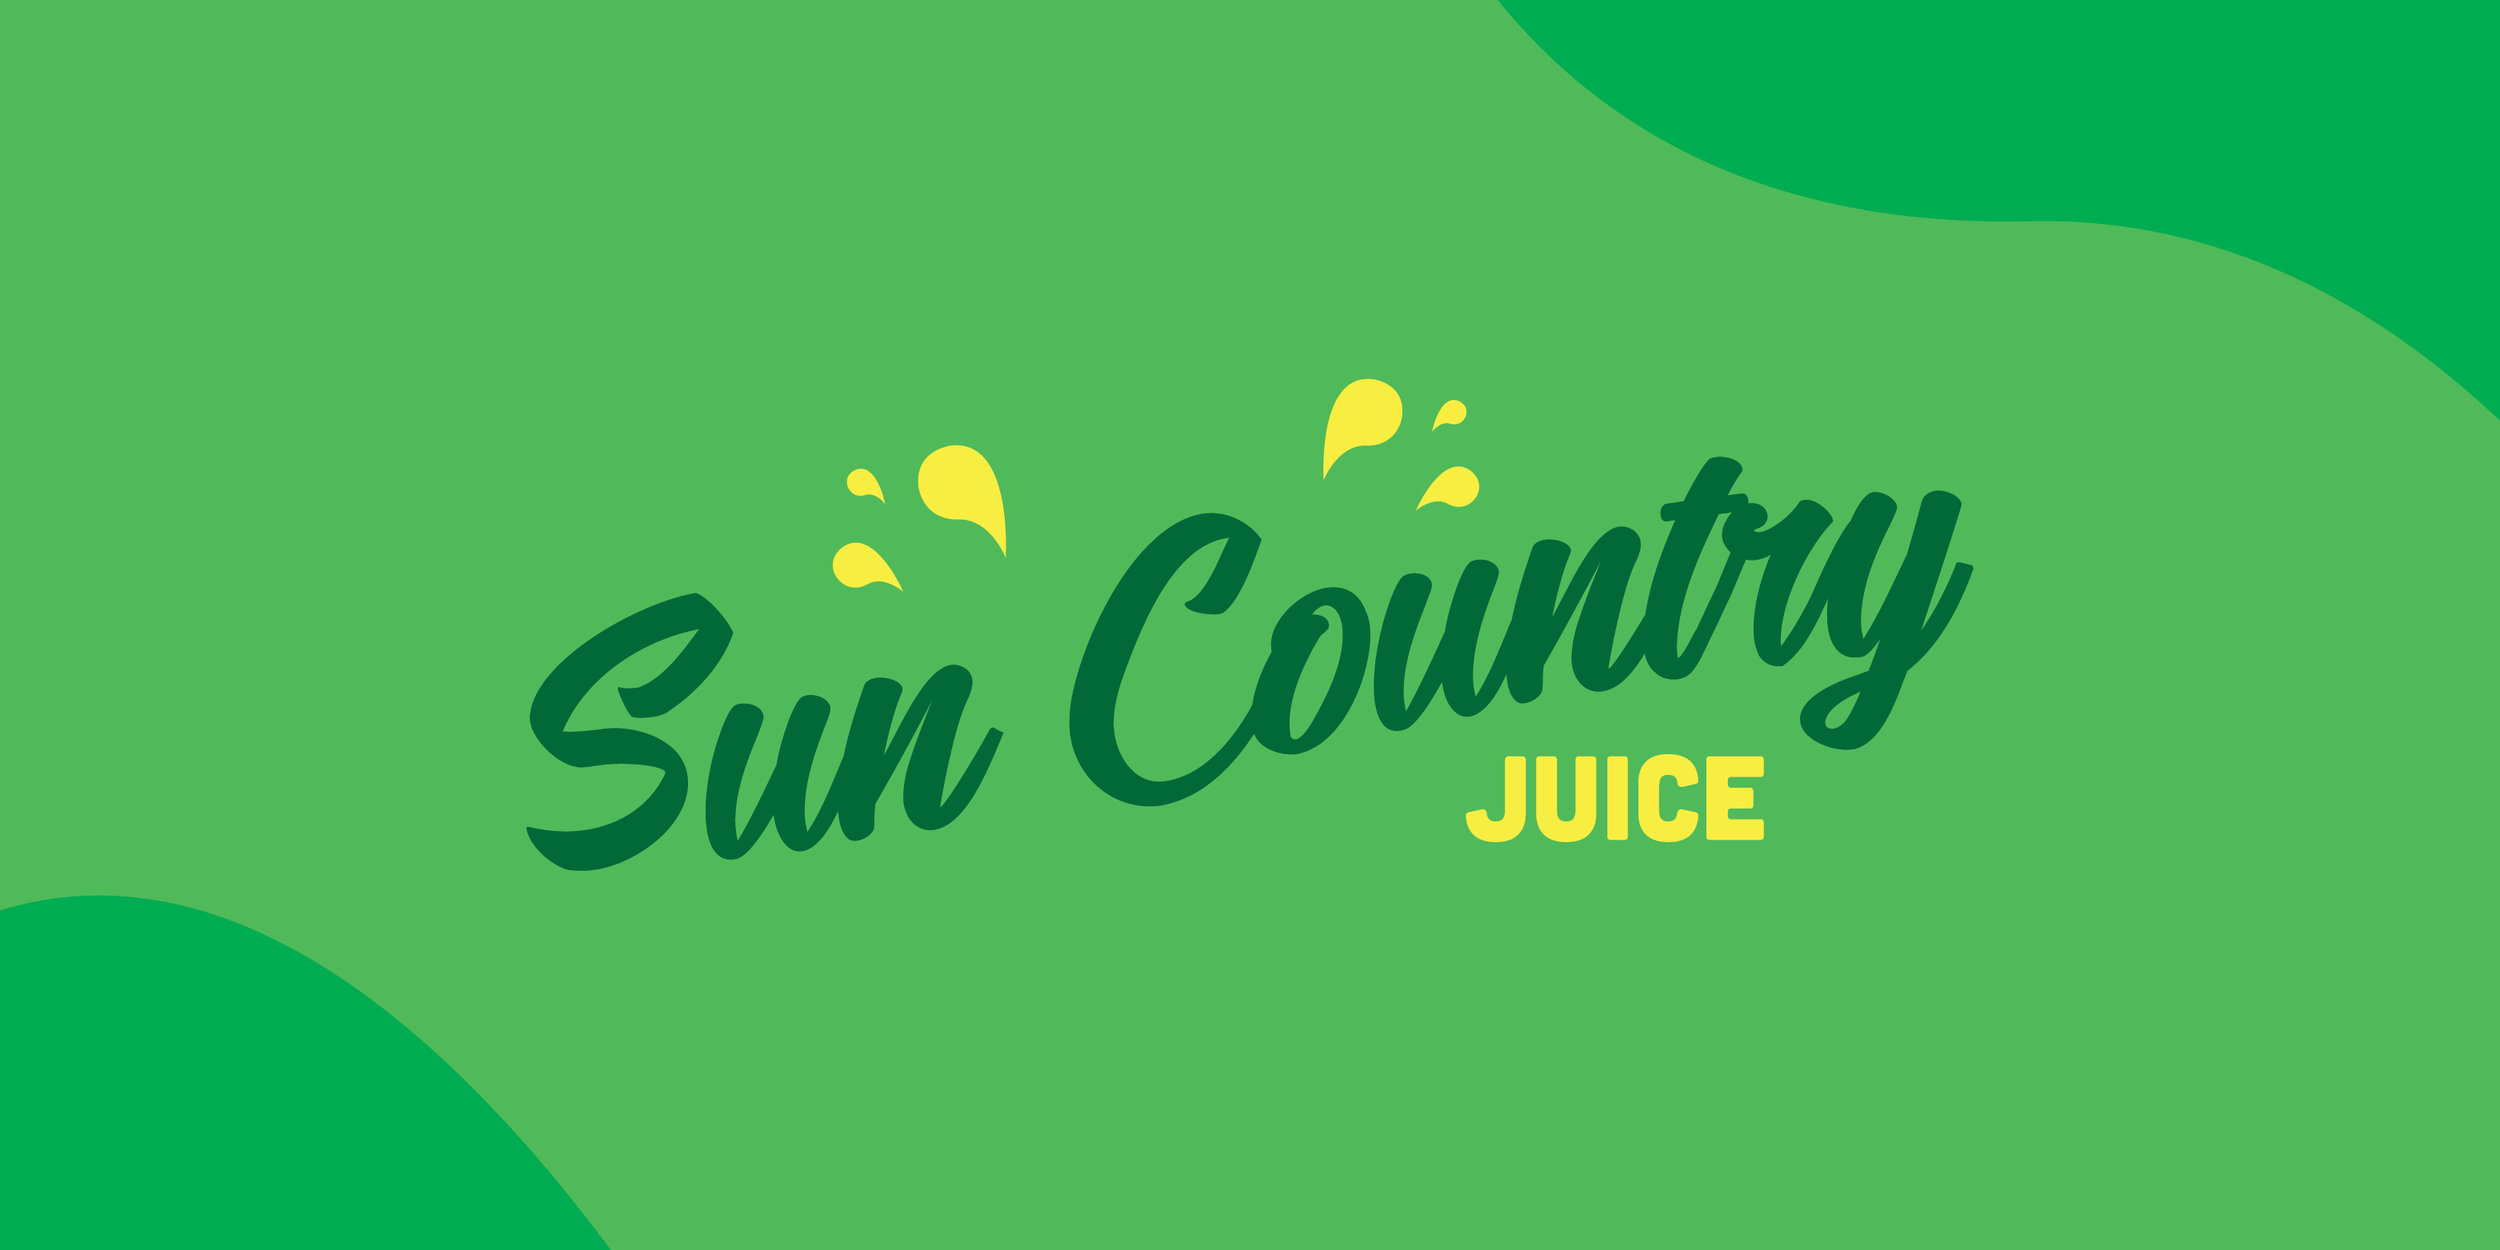 Sun-Country-Juice-Case-Study-Images-01.jpg